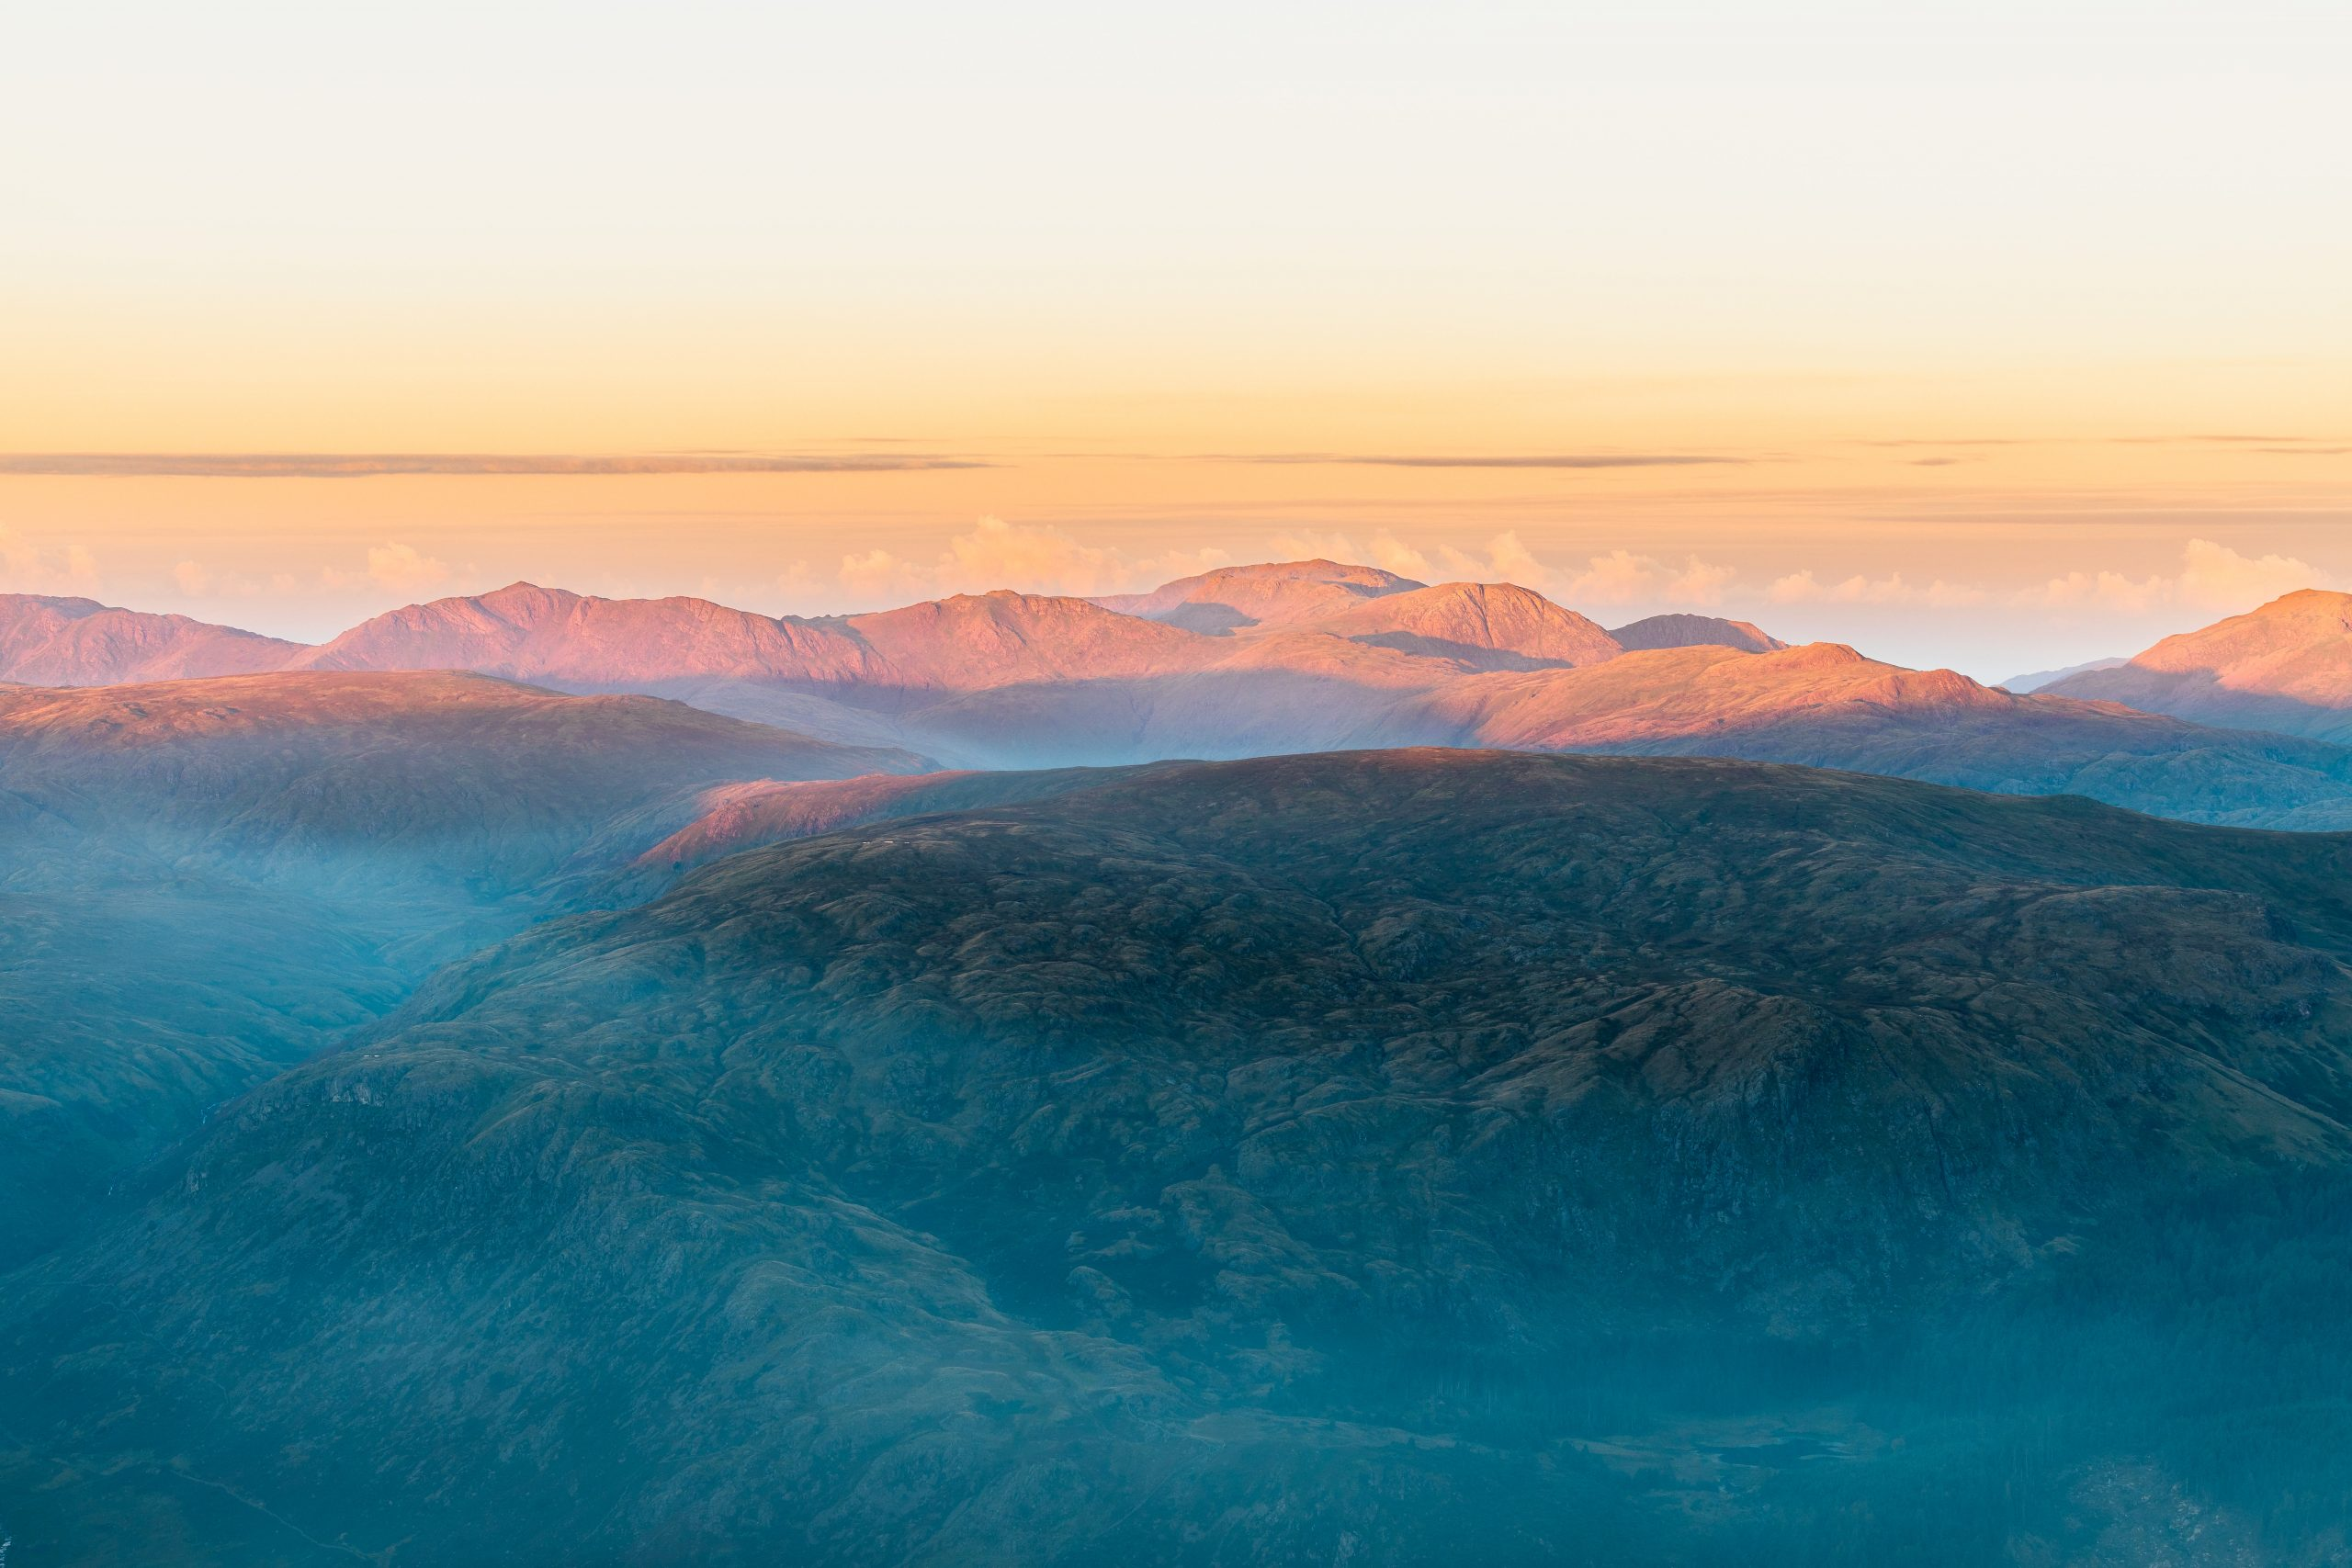 The central fells at dawn viewed from Helvellyn during a guided walk in the Lake District